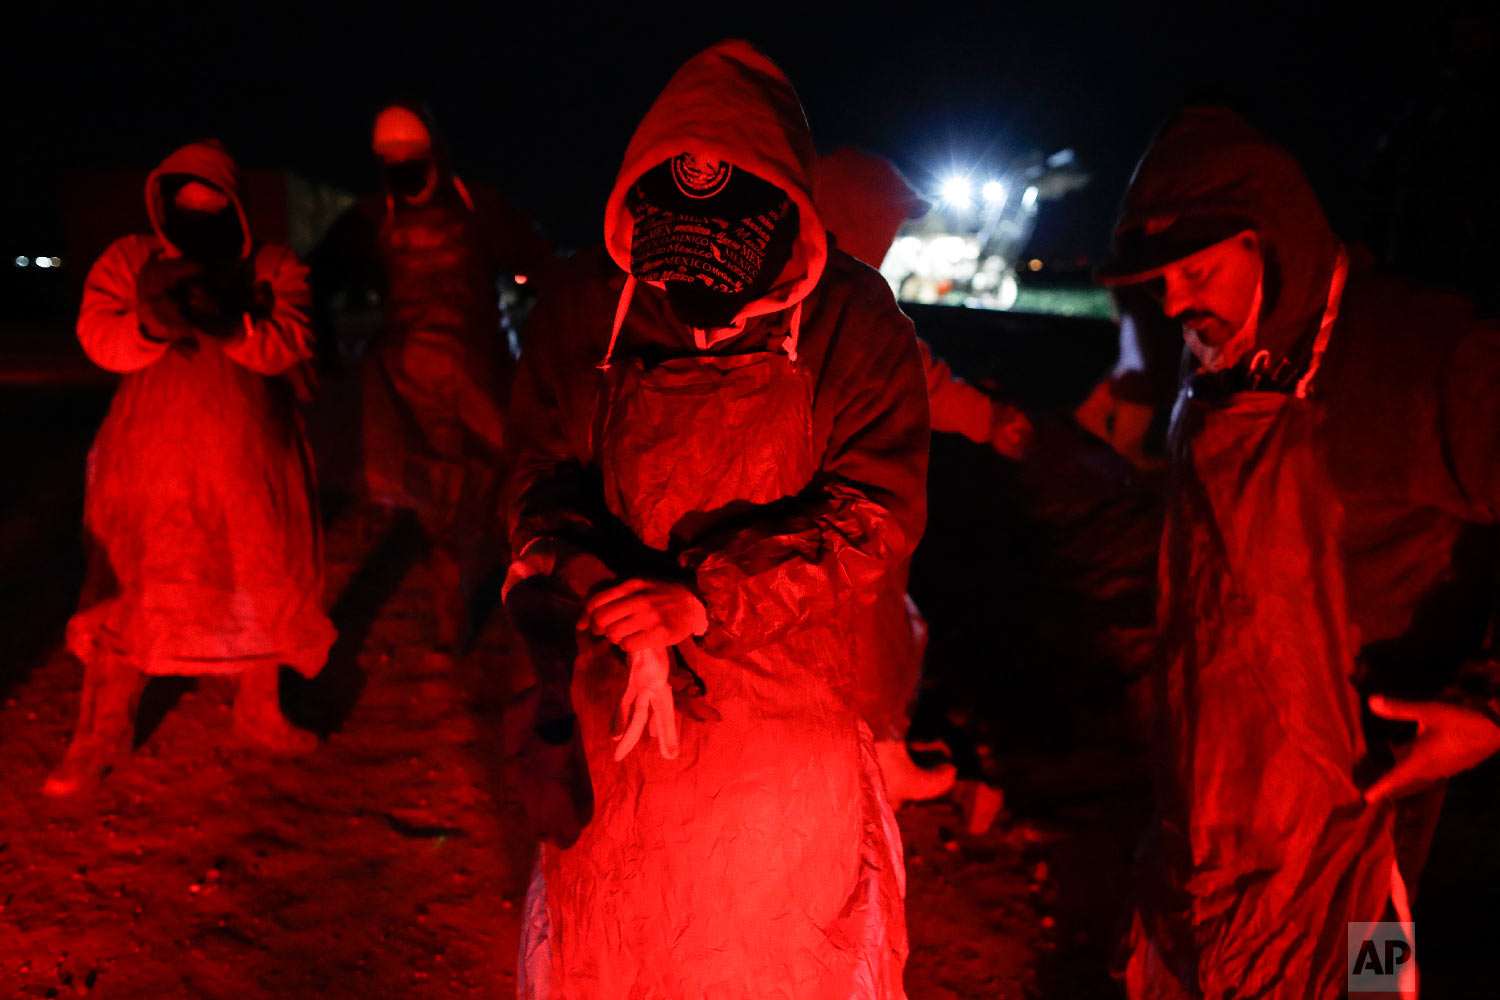 In this March 6, 2018 picture, farmworker Eduardo Garcia, of Mexicali, Mexico, center, puts on an apron and gloves in the glow from the taillights of a bus, as he and his crew arrive at a cabbage field ready for harvest, before dawn outside of Calexico, Calif. (AP Photo/Gregory Bull)